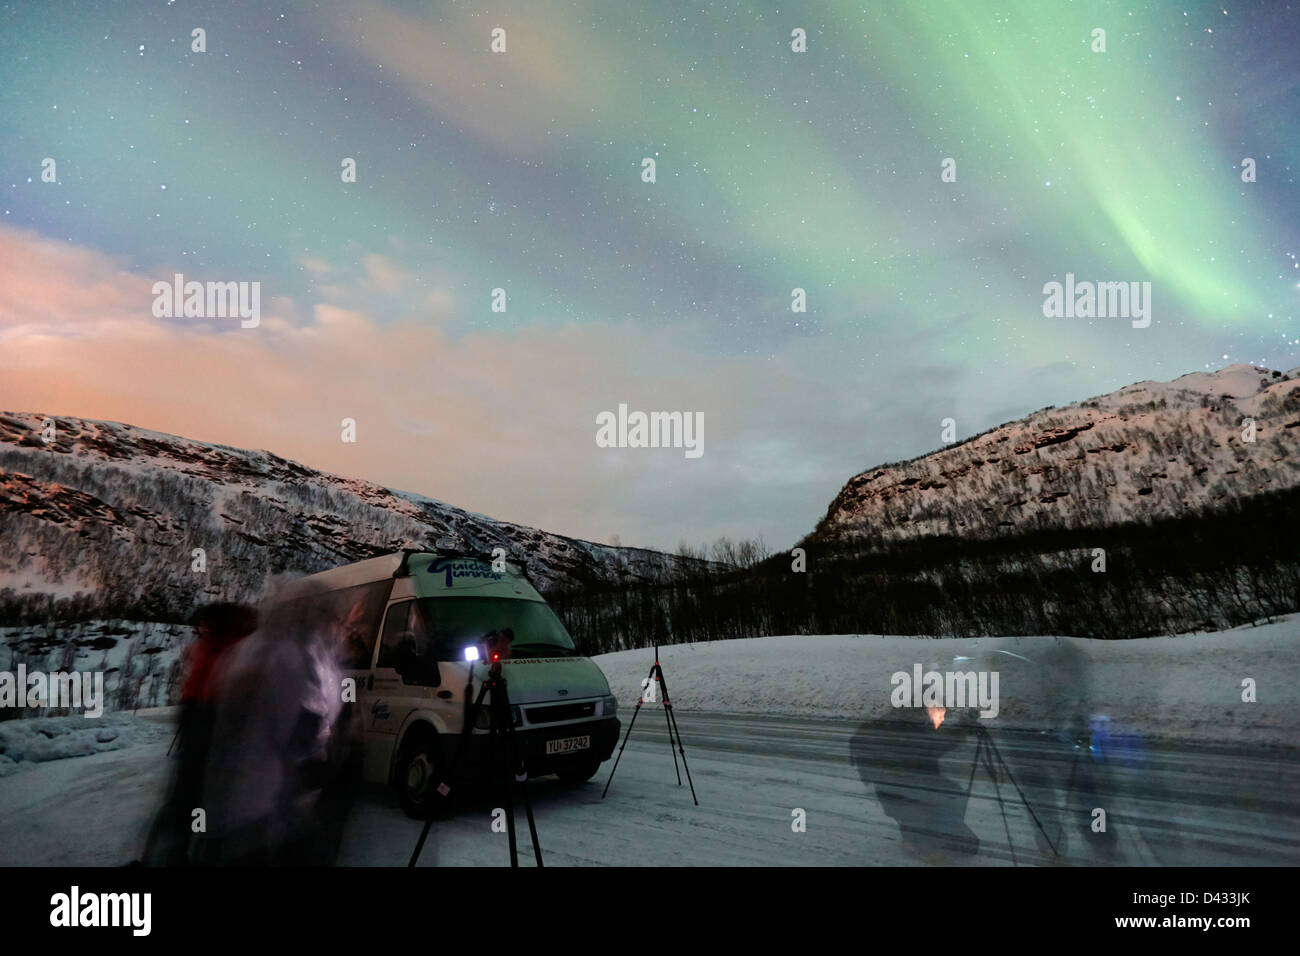 group of tourists set up to photograph swirling northern lights aurora borealis near tromso in northern norway europe - Stock Image